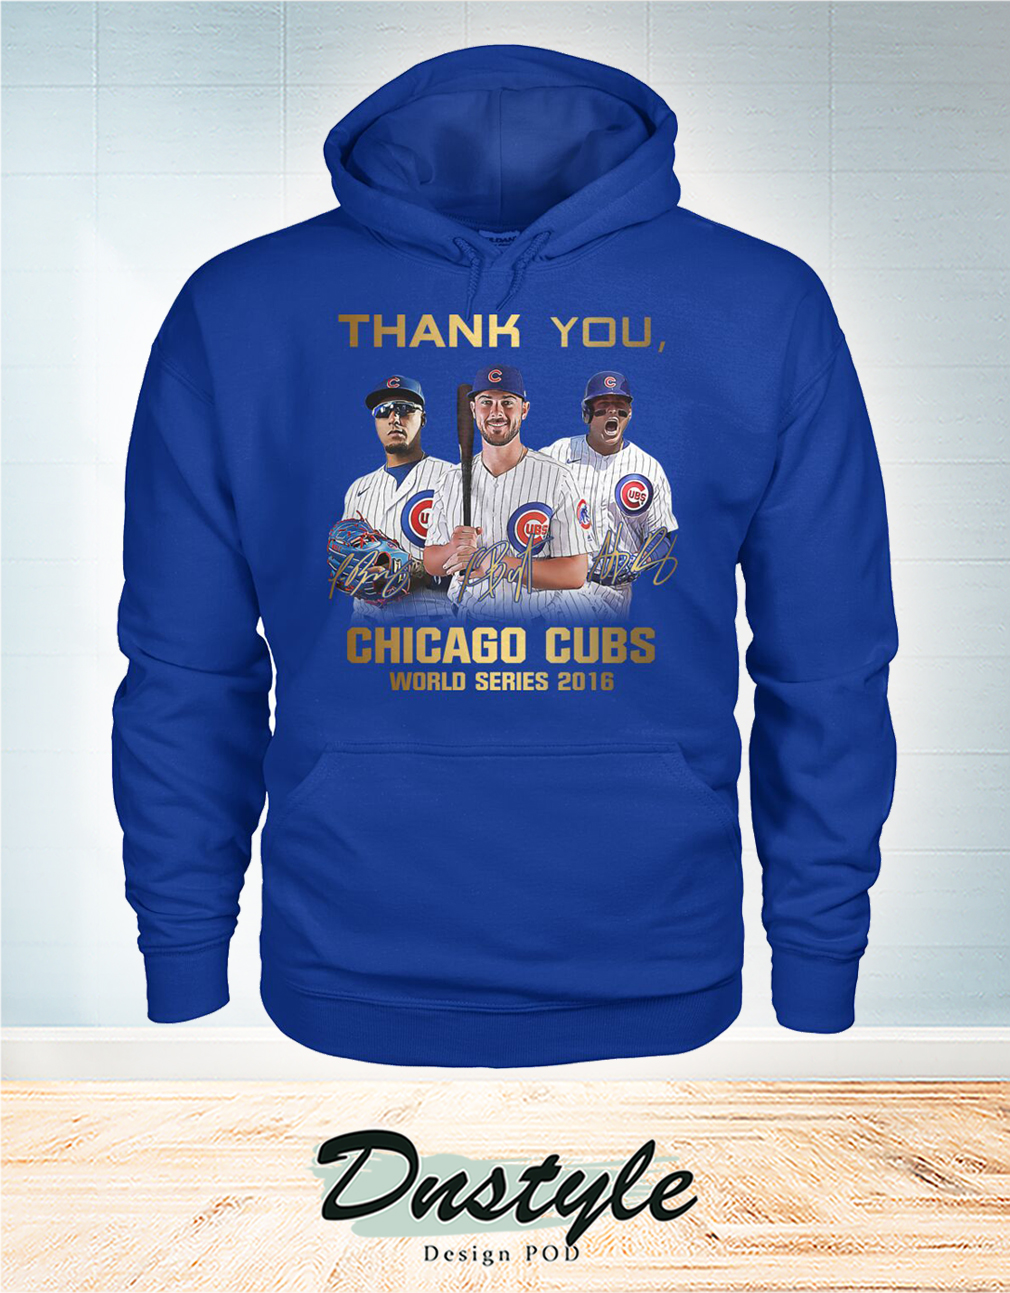 Thank you Chicago cubs world series 2016 hoodie